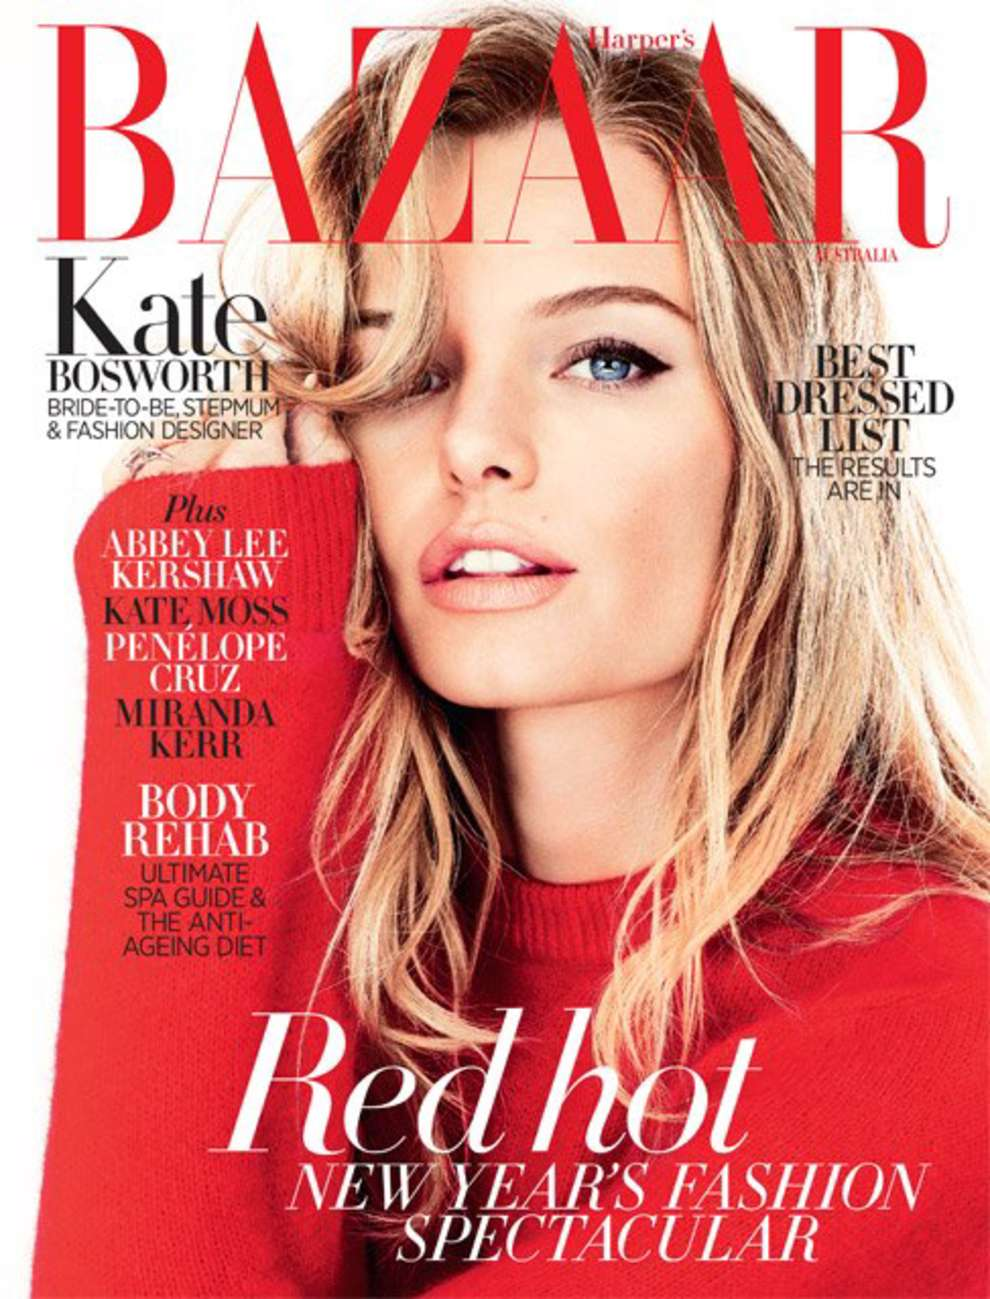 kate-bosworth-harpers-bazaar-magazine-australia-january-2013-05 - GotCeleb